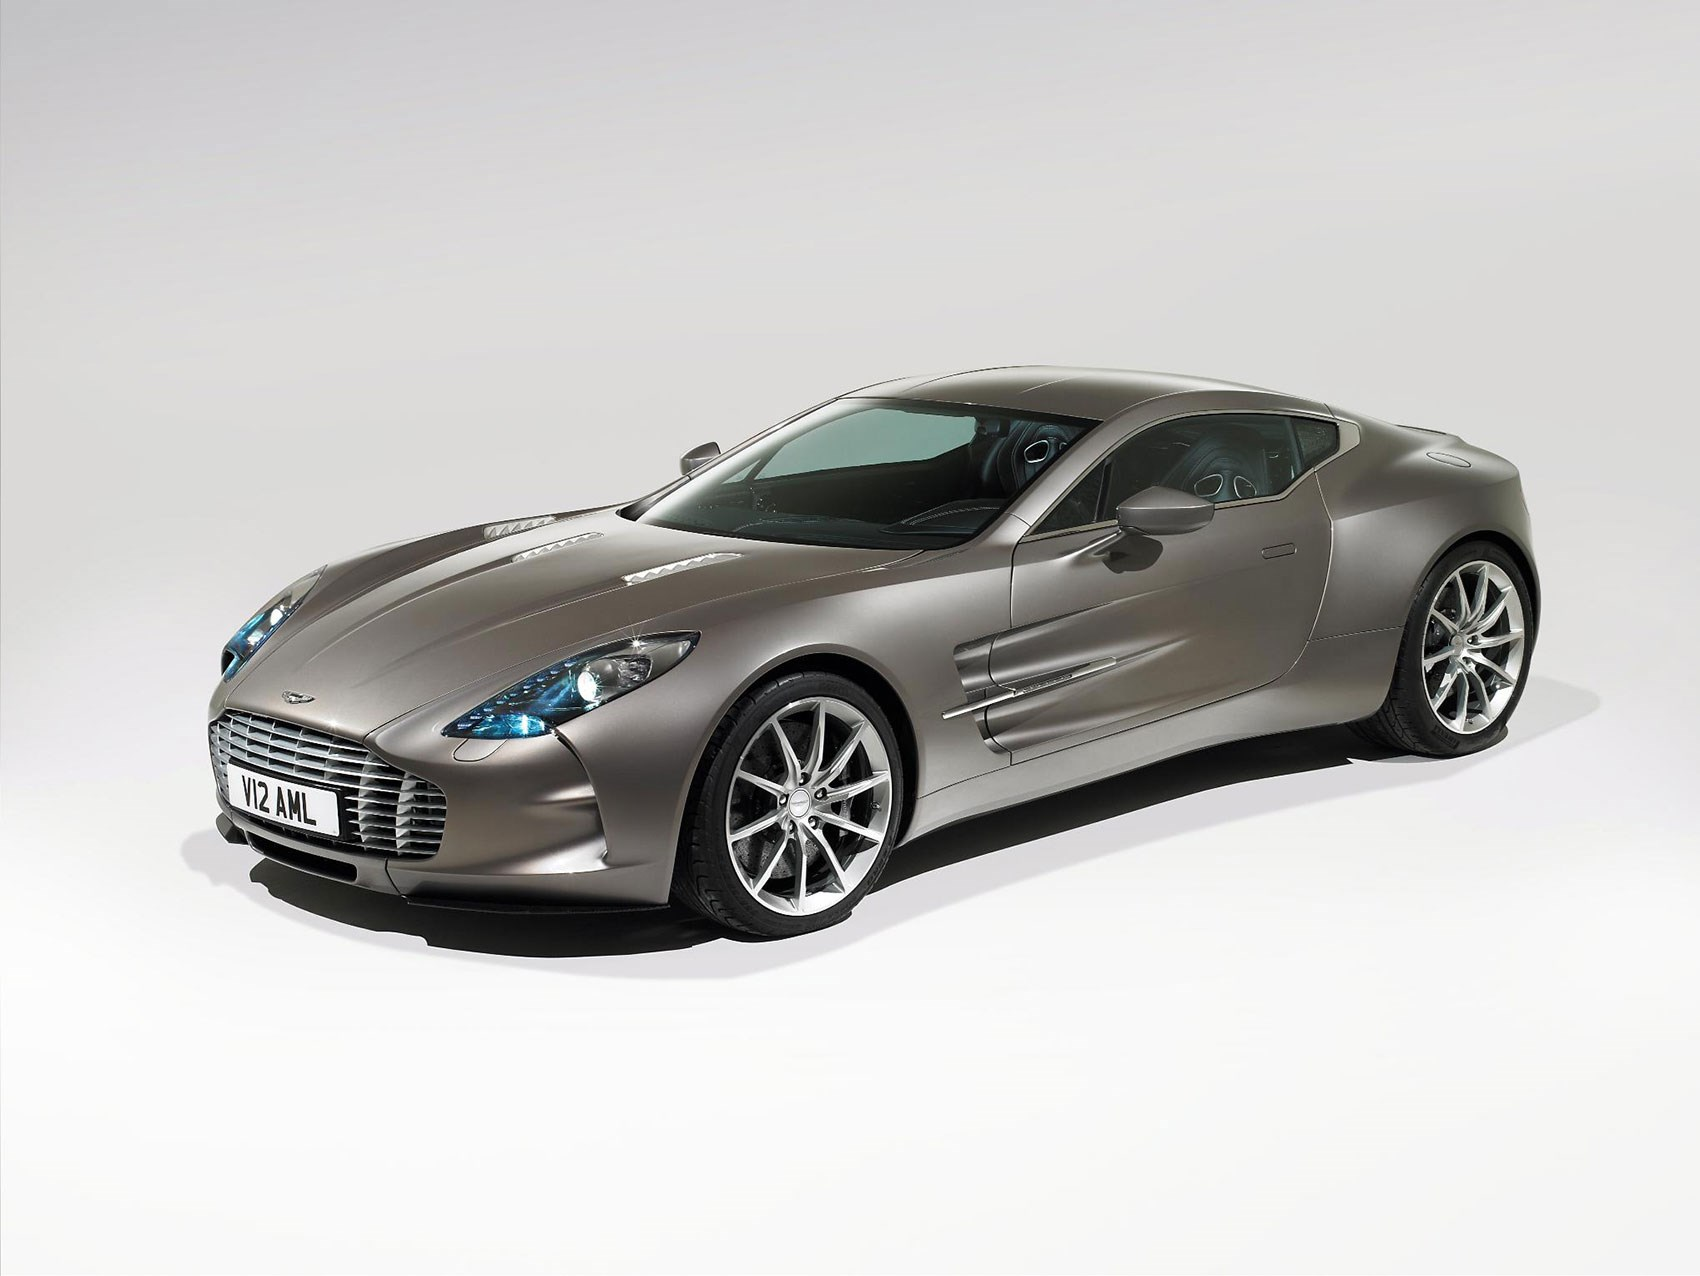 Aston Martin One-77 For Sale >> Aston Martin One 77 Car Magazine